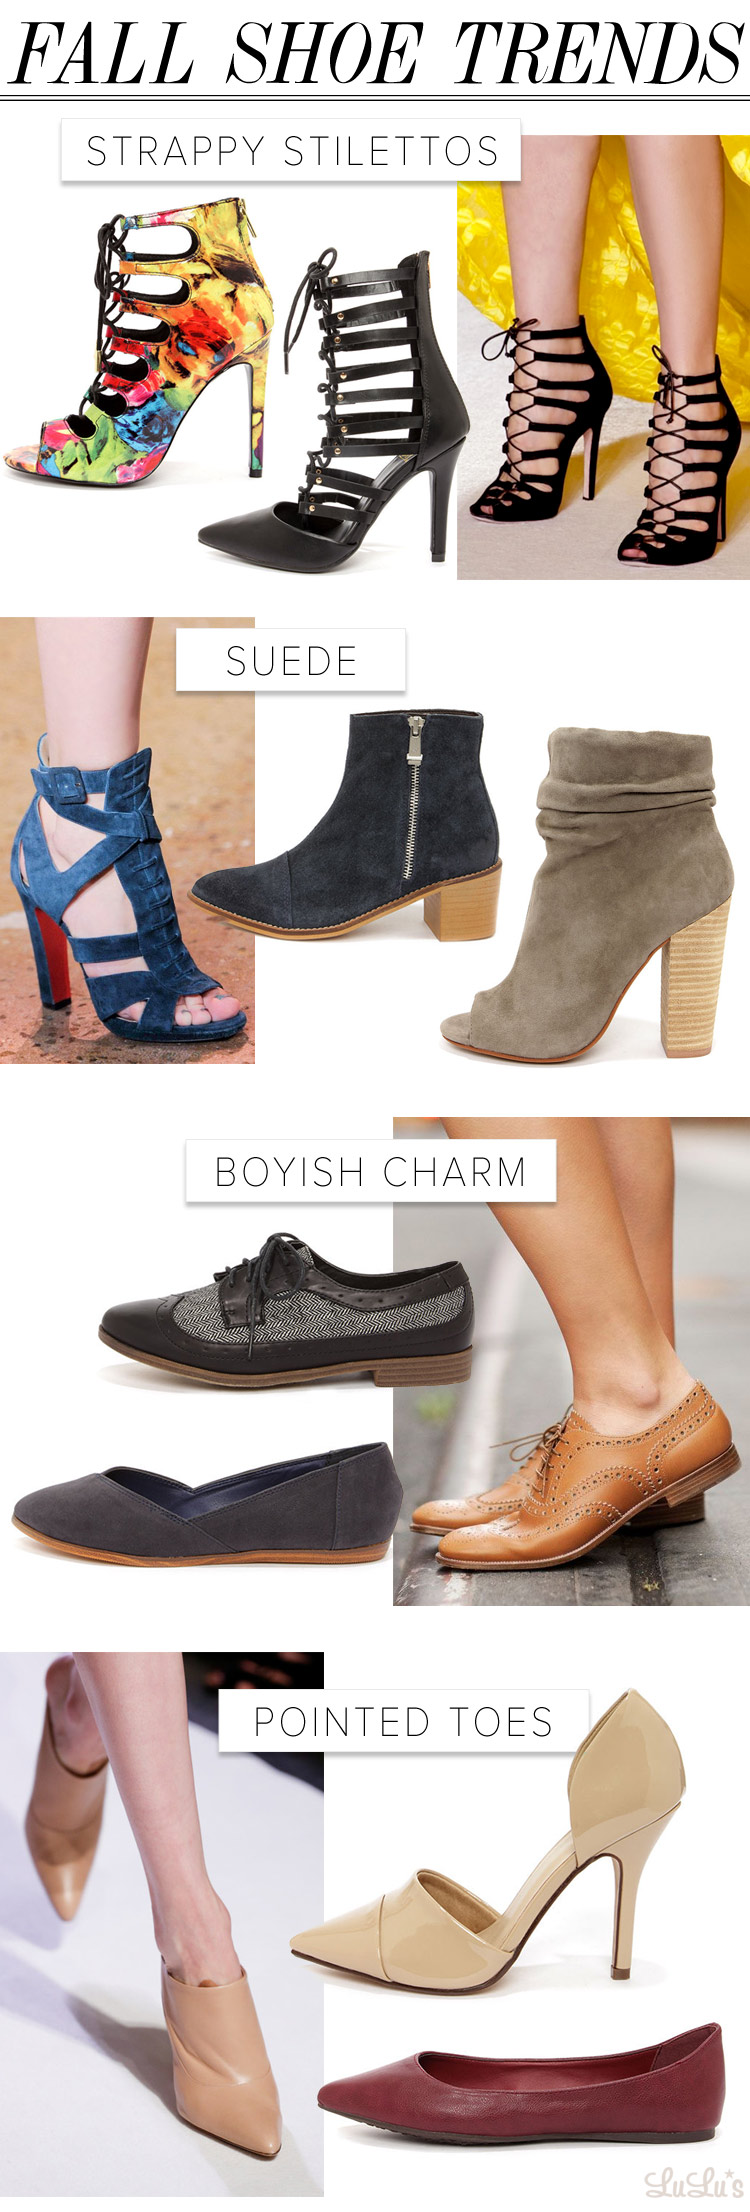 fall shoe trends 2014